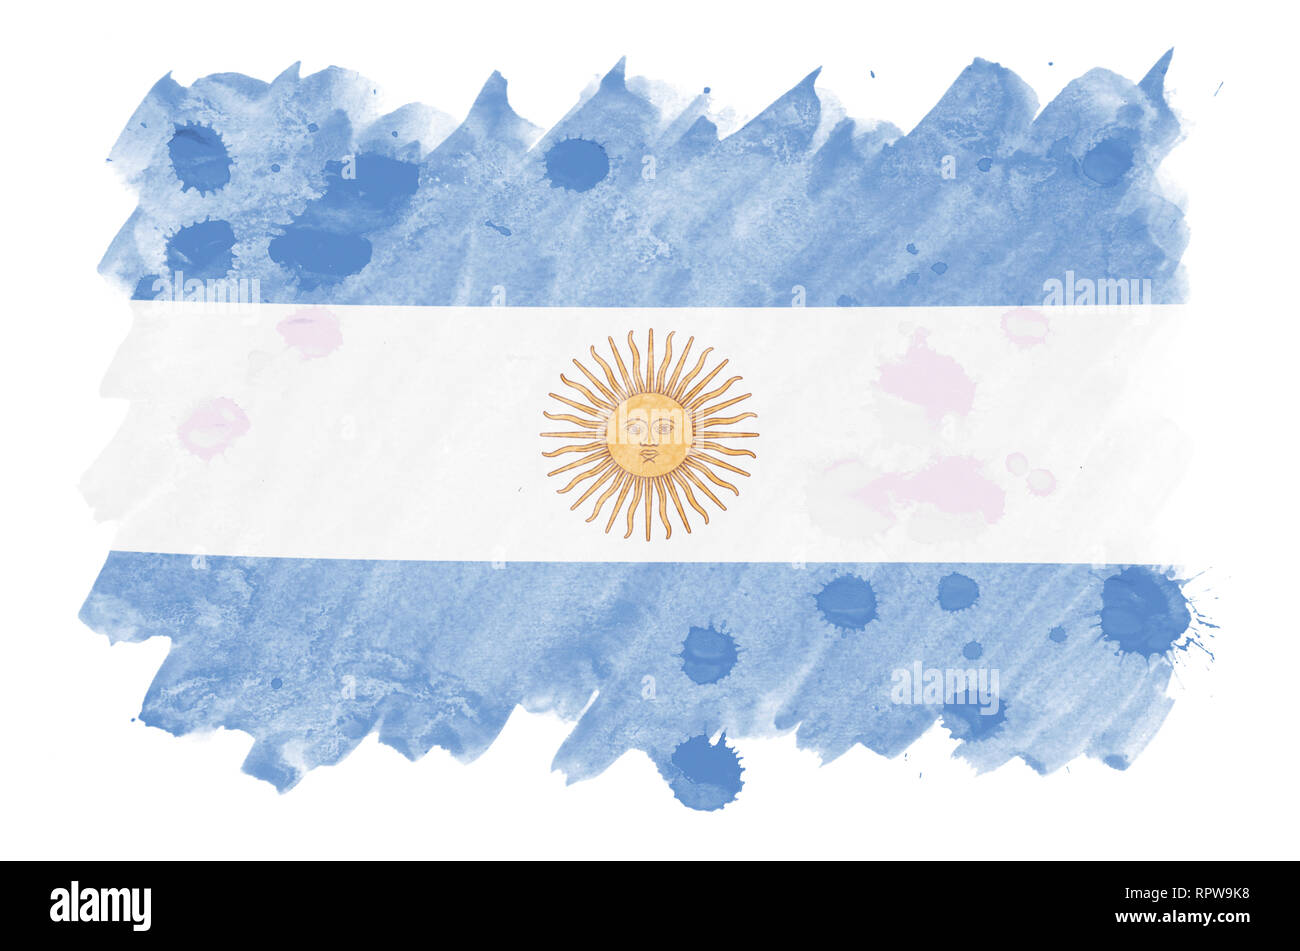 Argentina flag  is depicted in liquid watercolor style isolated on white background. Careless paint shading with image of national flag. Independence  - Stock Image